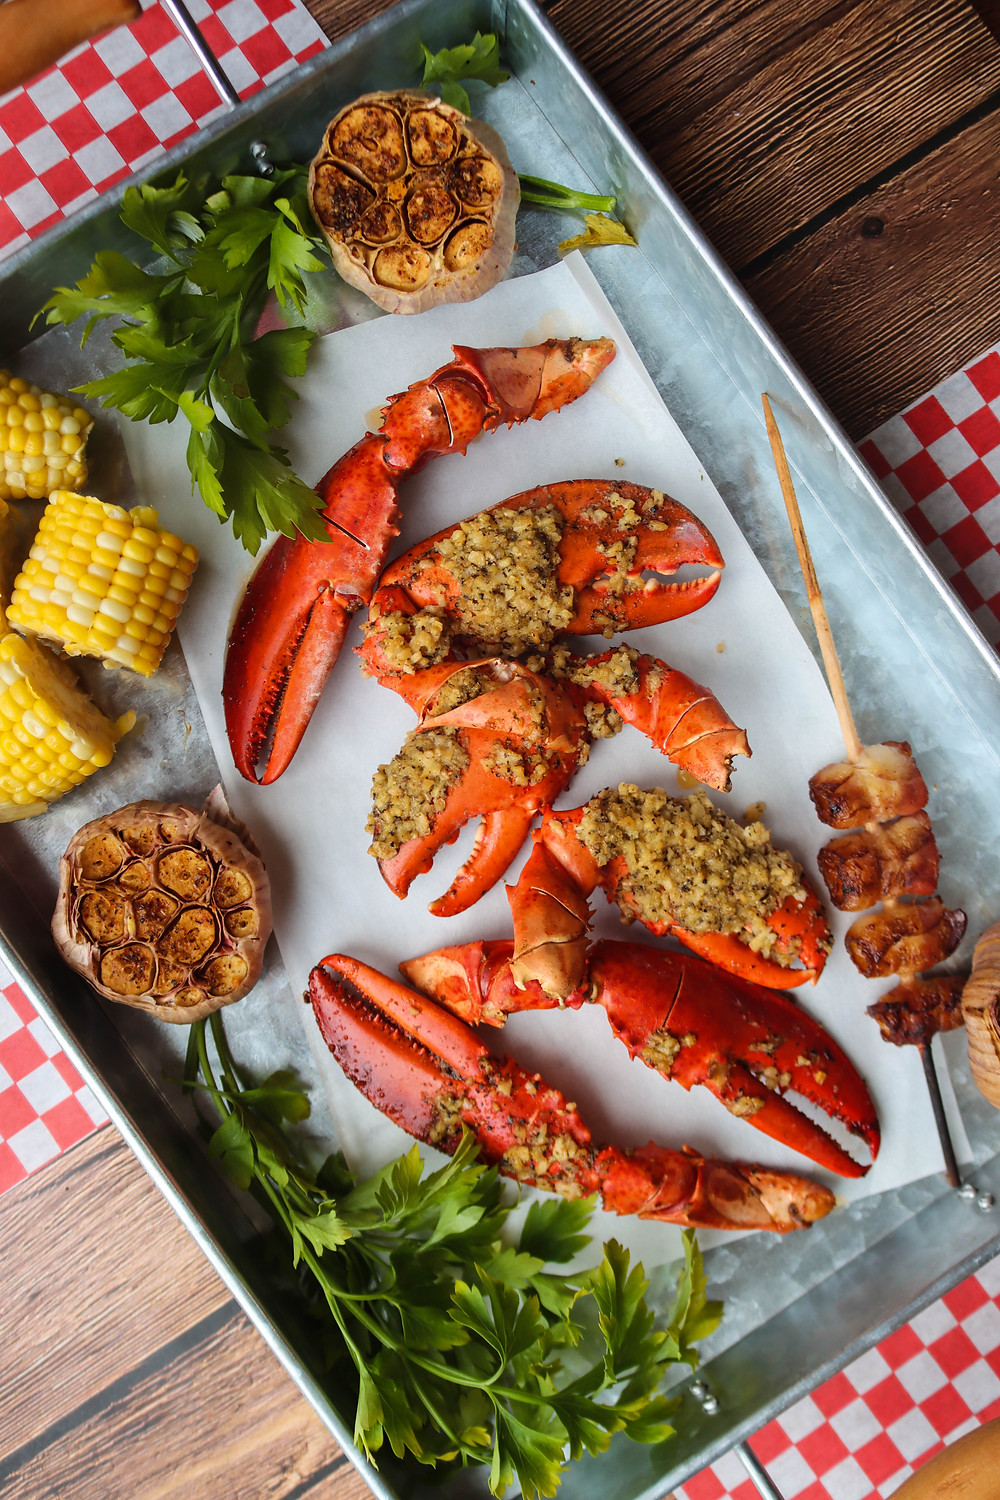 Smoked Lobster Claw. BBQ Lobster Claws.